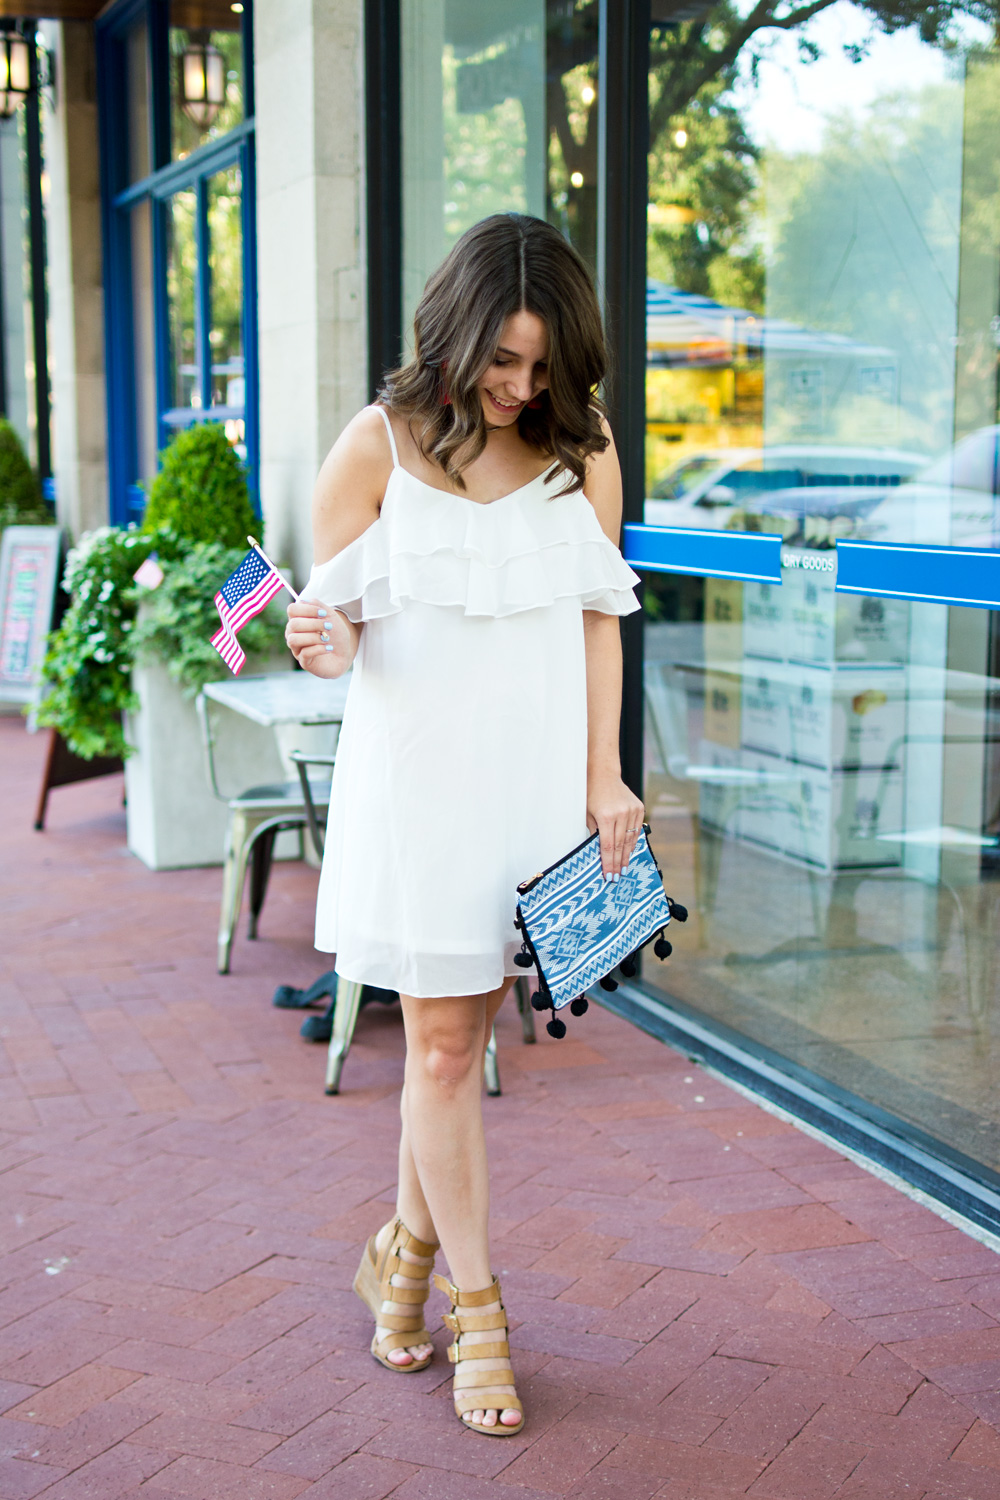 White off the shoulder sundress and blue pom pom clutch styled for summer